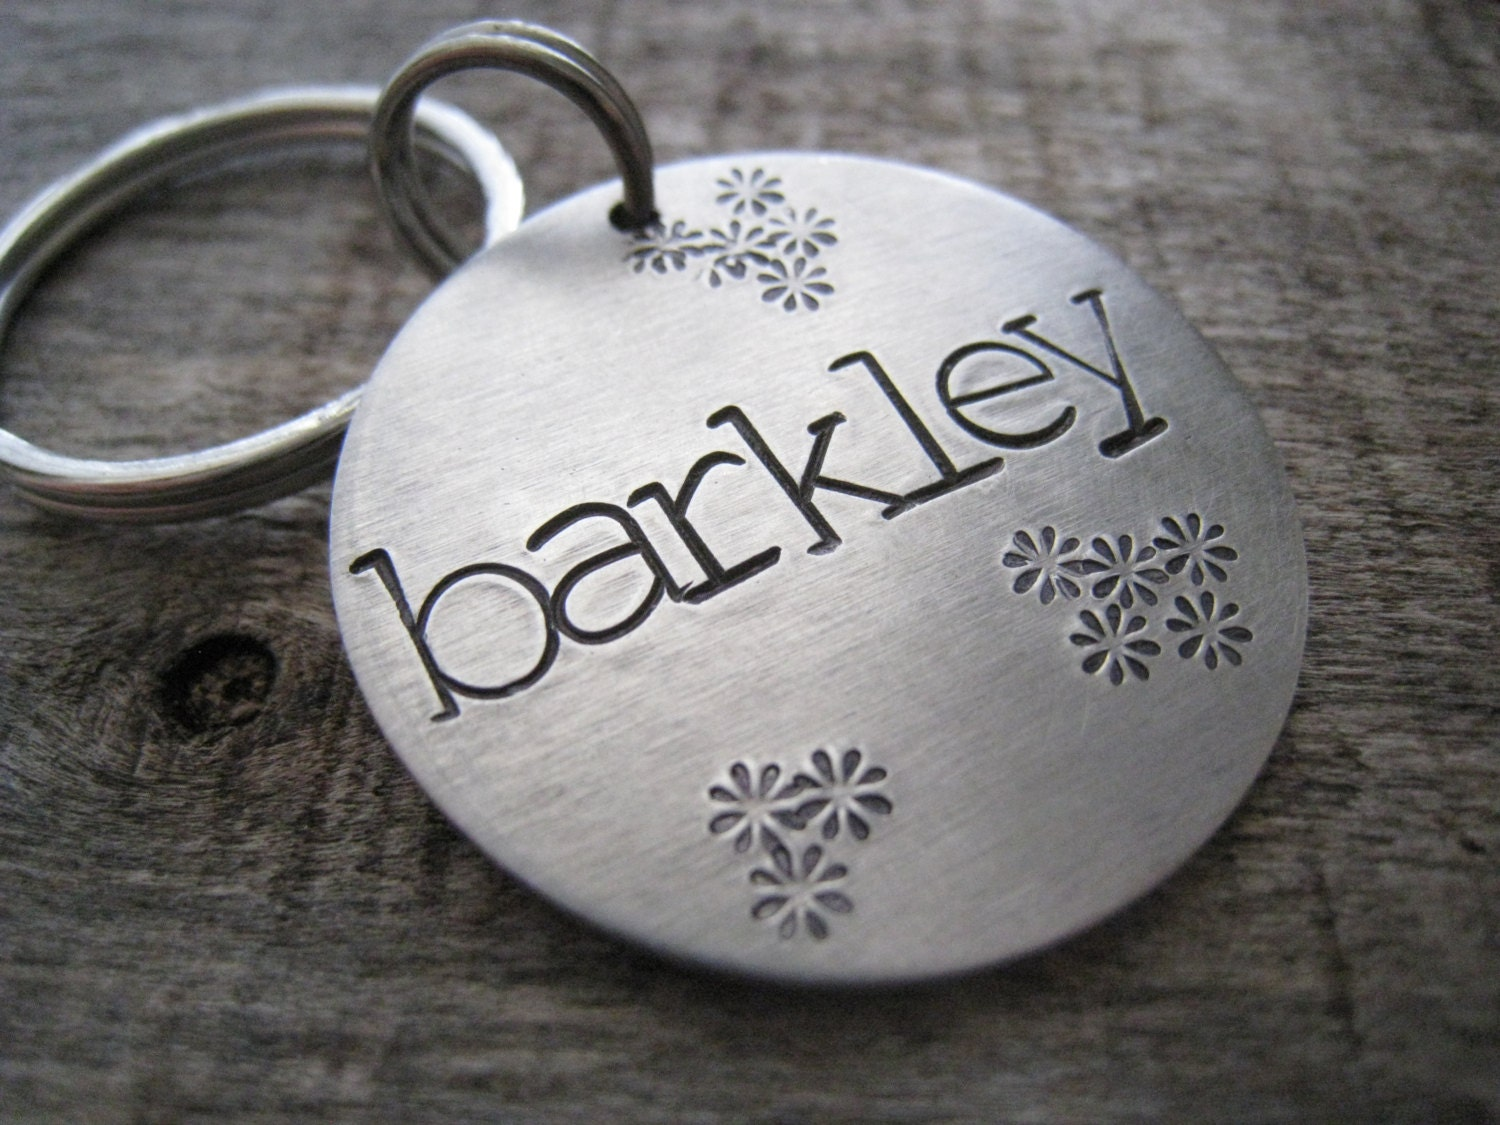 dog id tag personalized pet dog tag dog collar tag. Black Bedroom Furniture Sets. Home Design Ideas